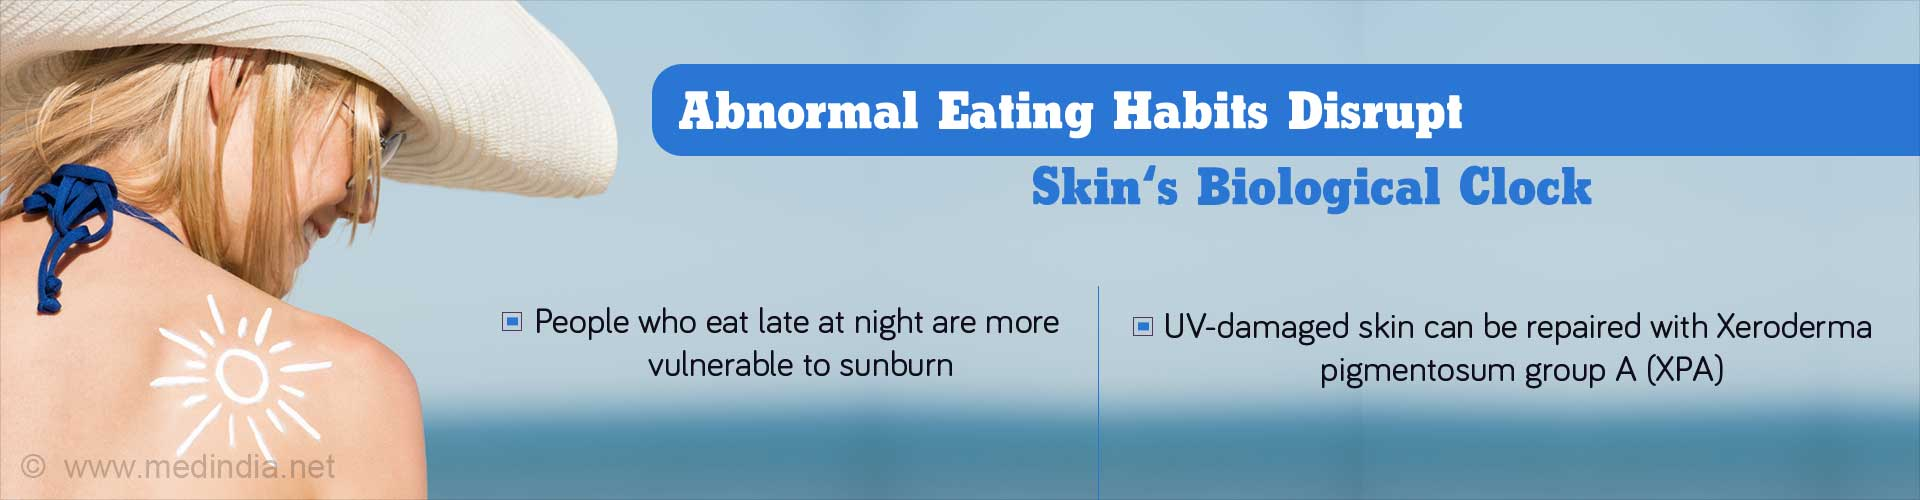 Abnormal Eating Habits Can Increase The Risk of Skin Cancer